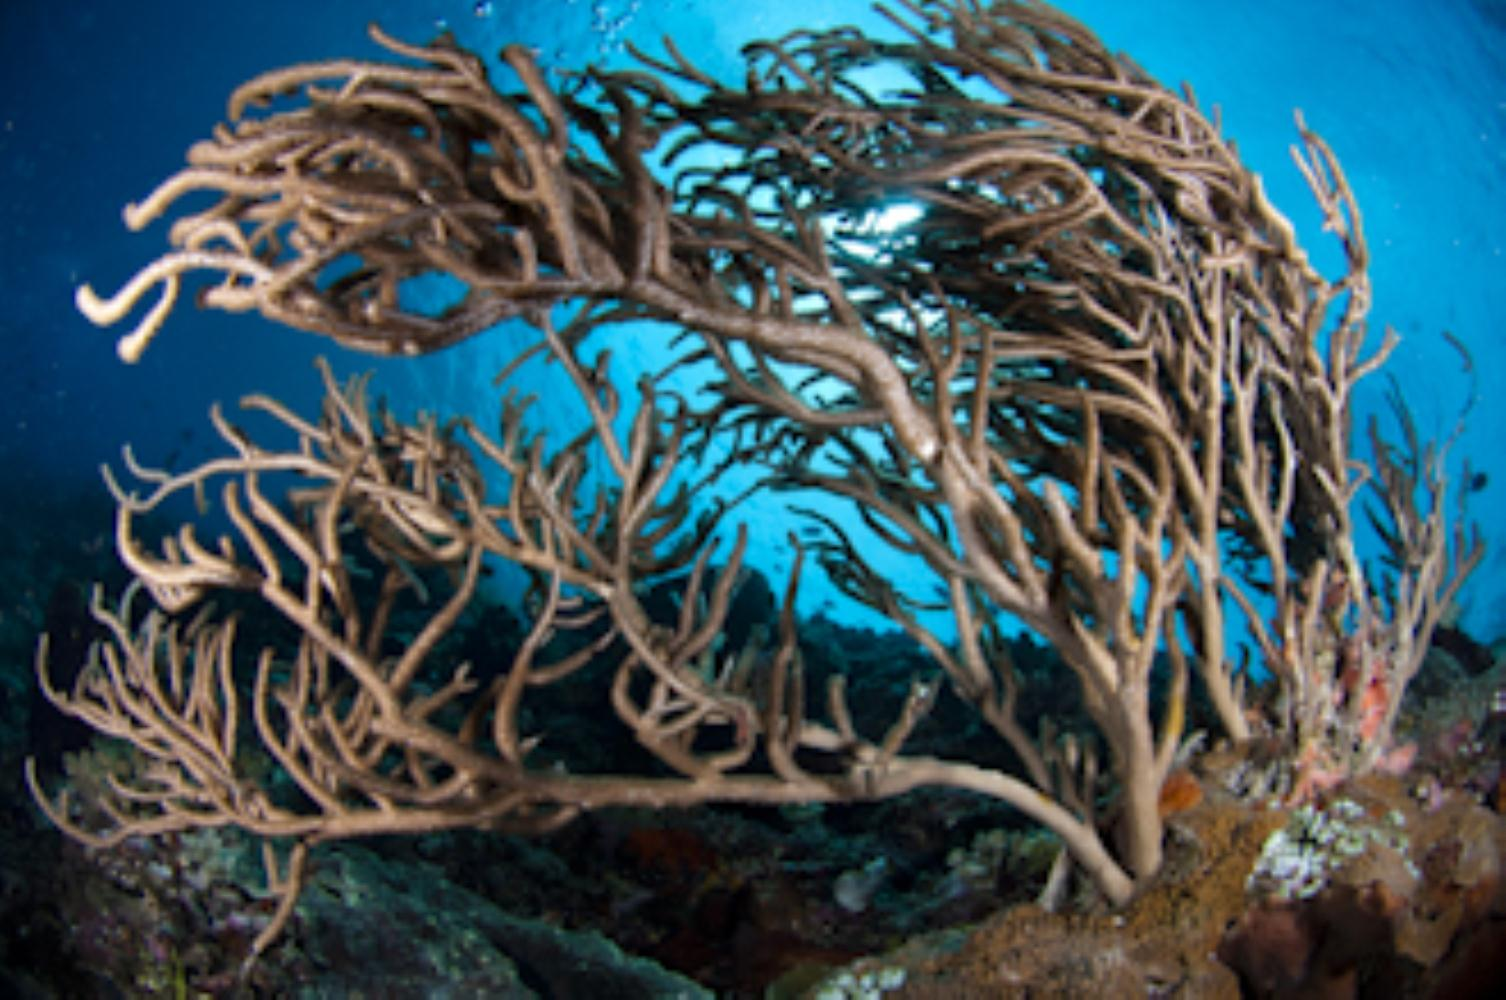 Ropy sea fan